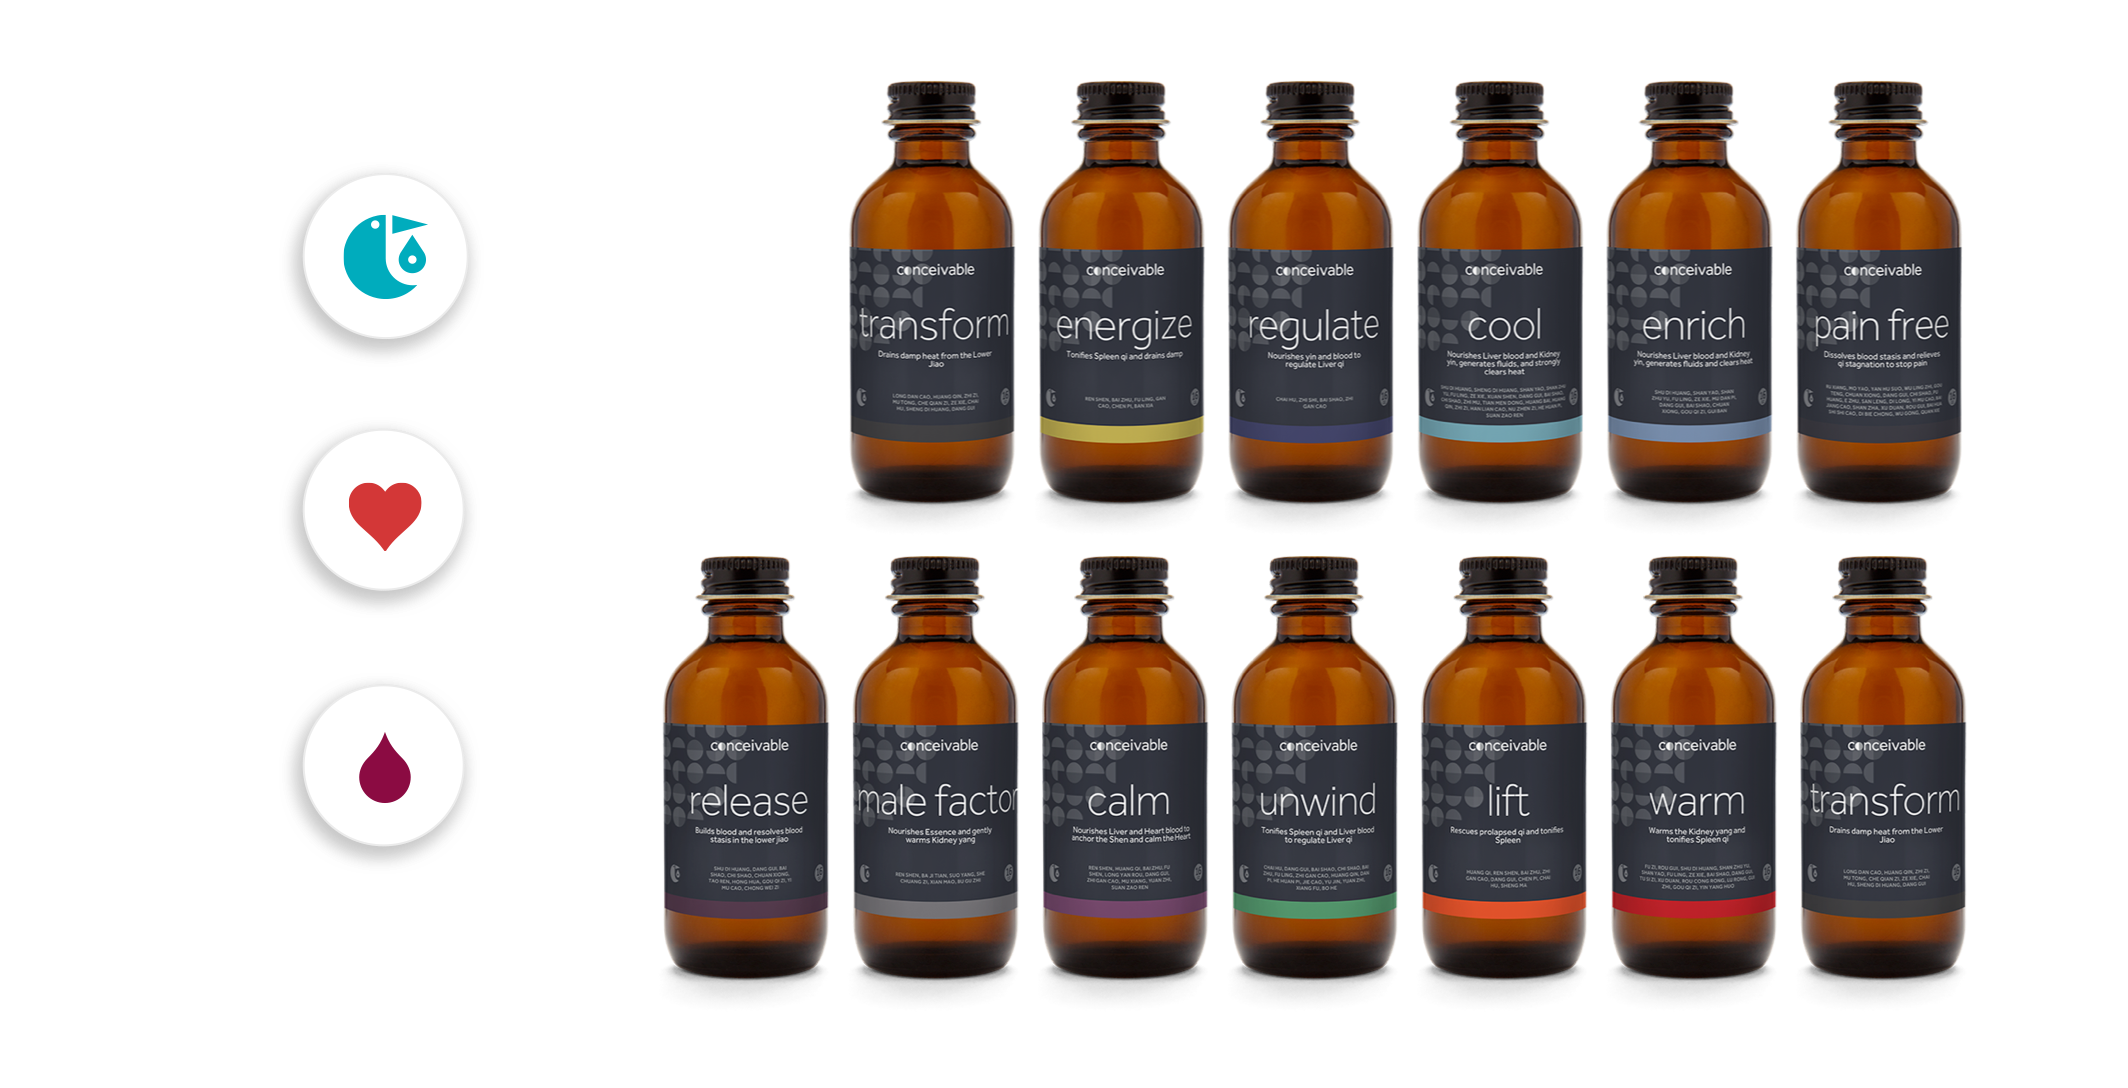 Thinktiv invented a revolutionary hybrid infertility treatment platform that combines herbal formulaswith modern delivery methods.